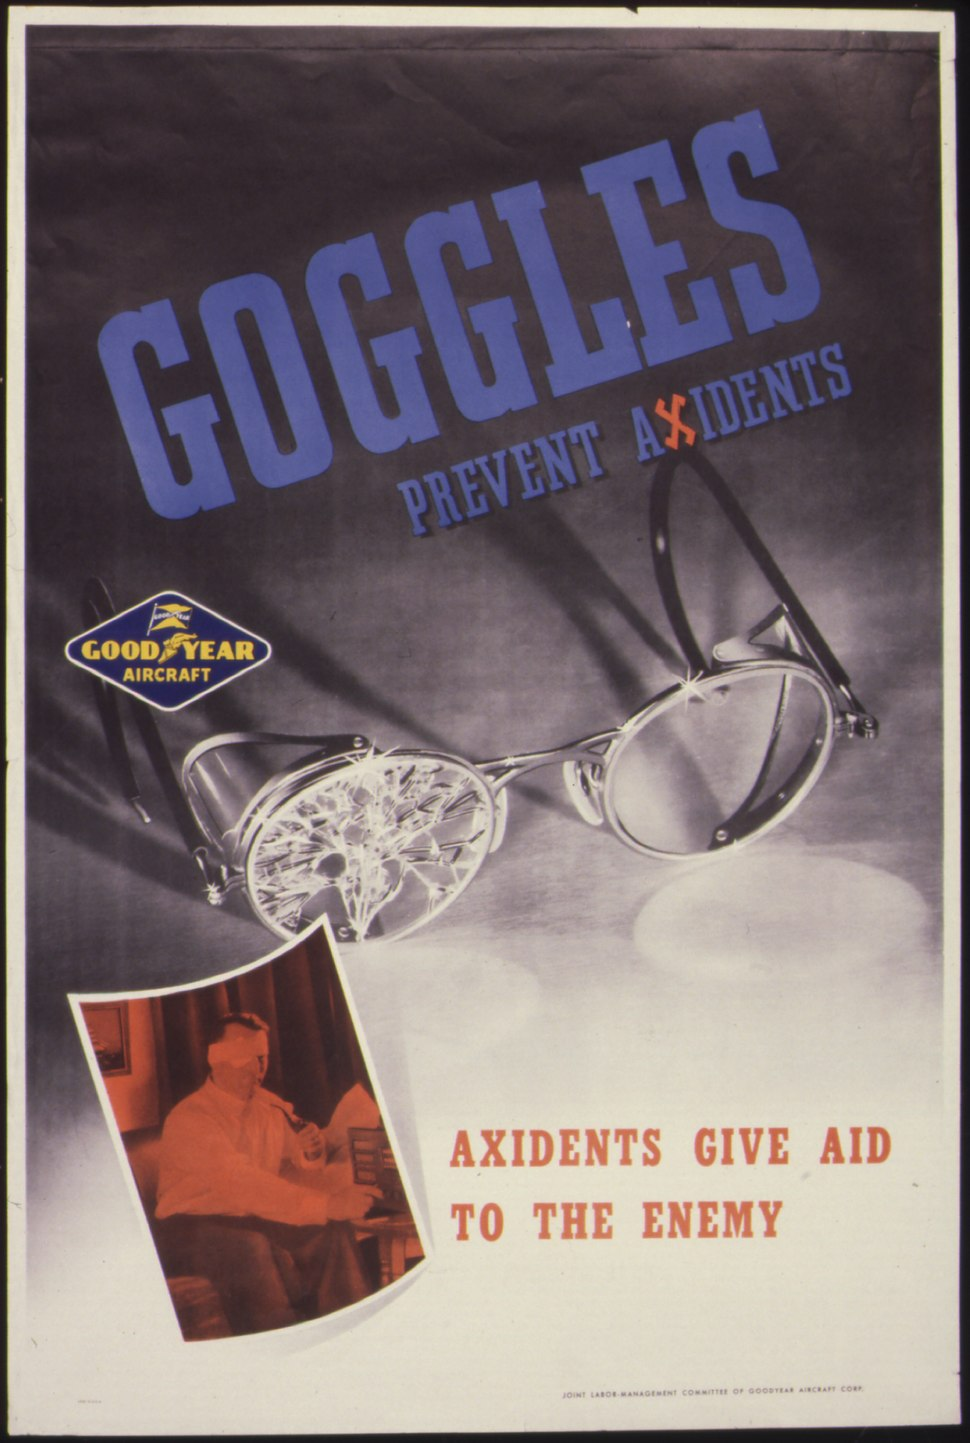 Goggles prevent axidents (sic). Axidents (sic) give aid to the enemy. - NARA - 535353